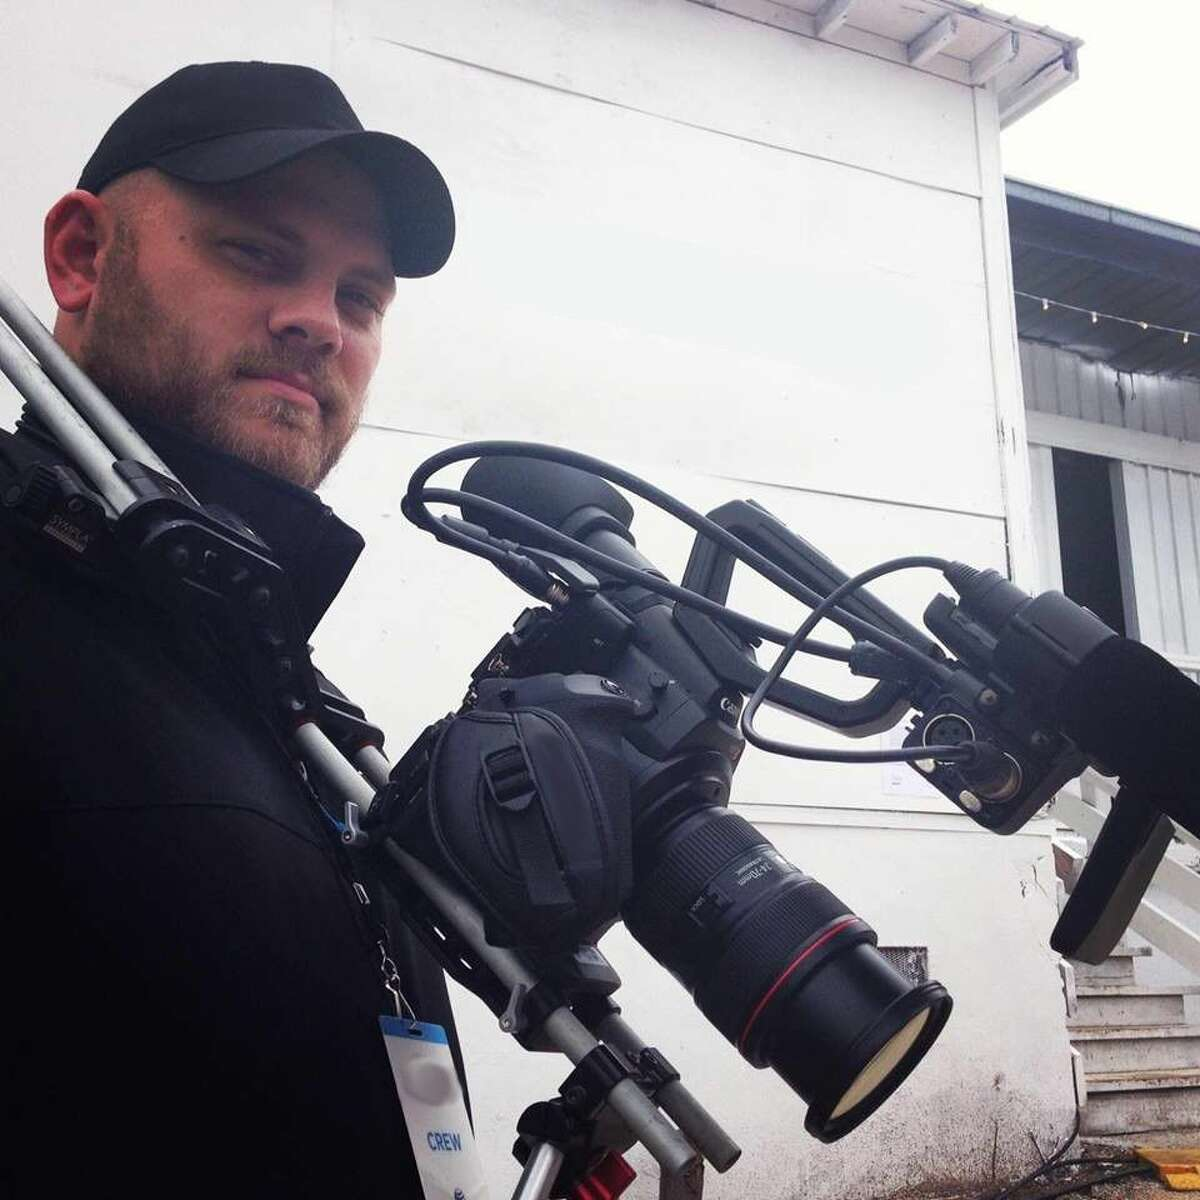 Andy Conner, a graduate of Dayton High School and Baylor University, just completed a new film.